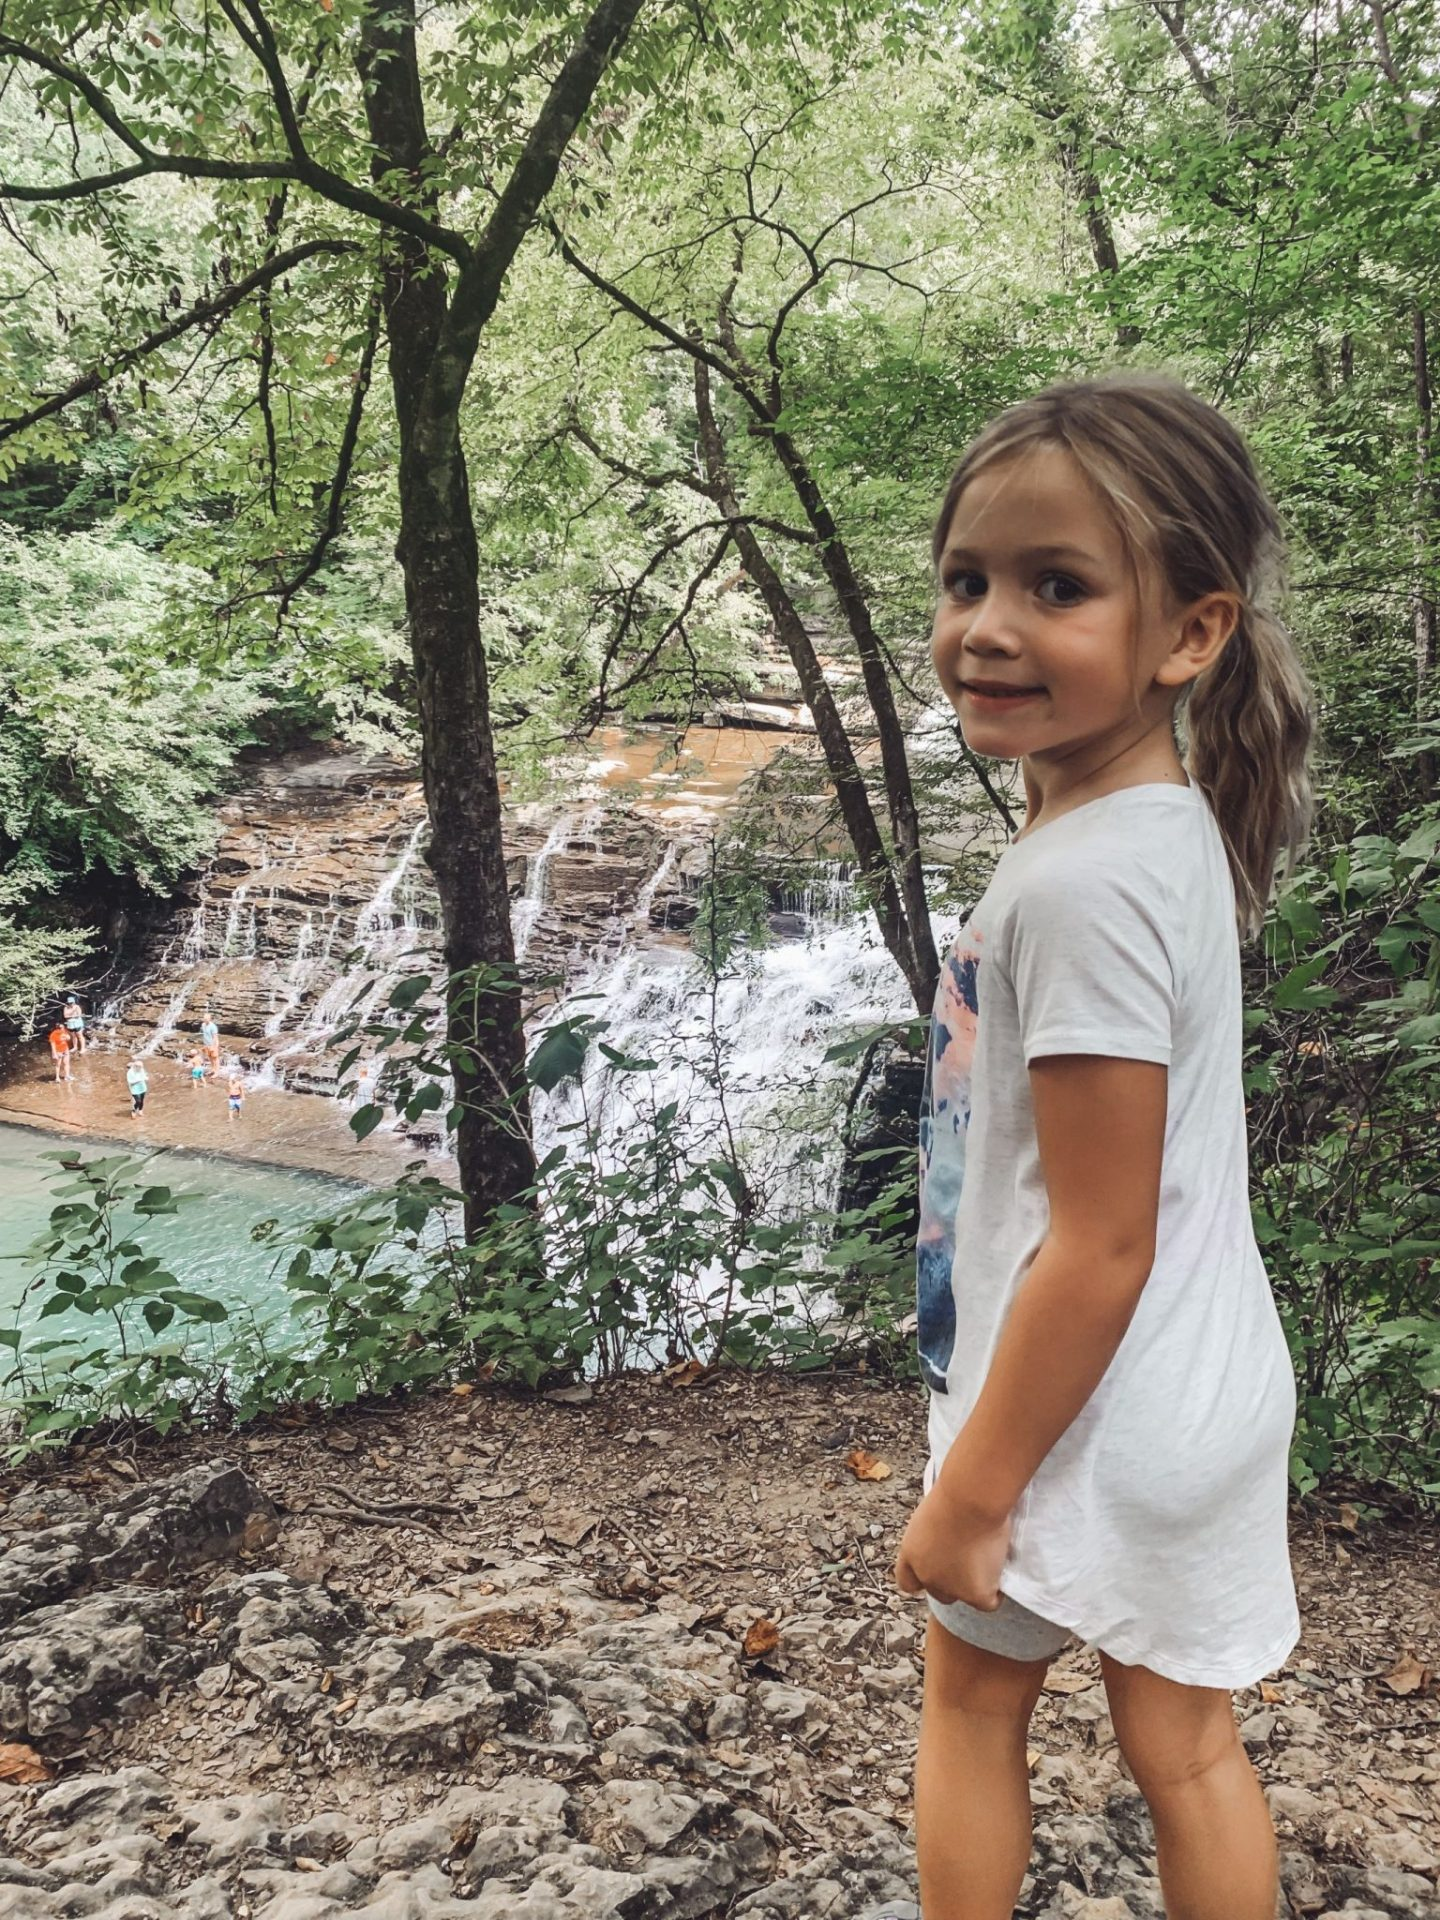 Family-Friendly Waterfall Hiking Trails in Nashville, TN by popular Nashville blog, Modern Day Moguls: image of a girl standing next to Rutledge Falls in Tullahoma, TN.